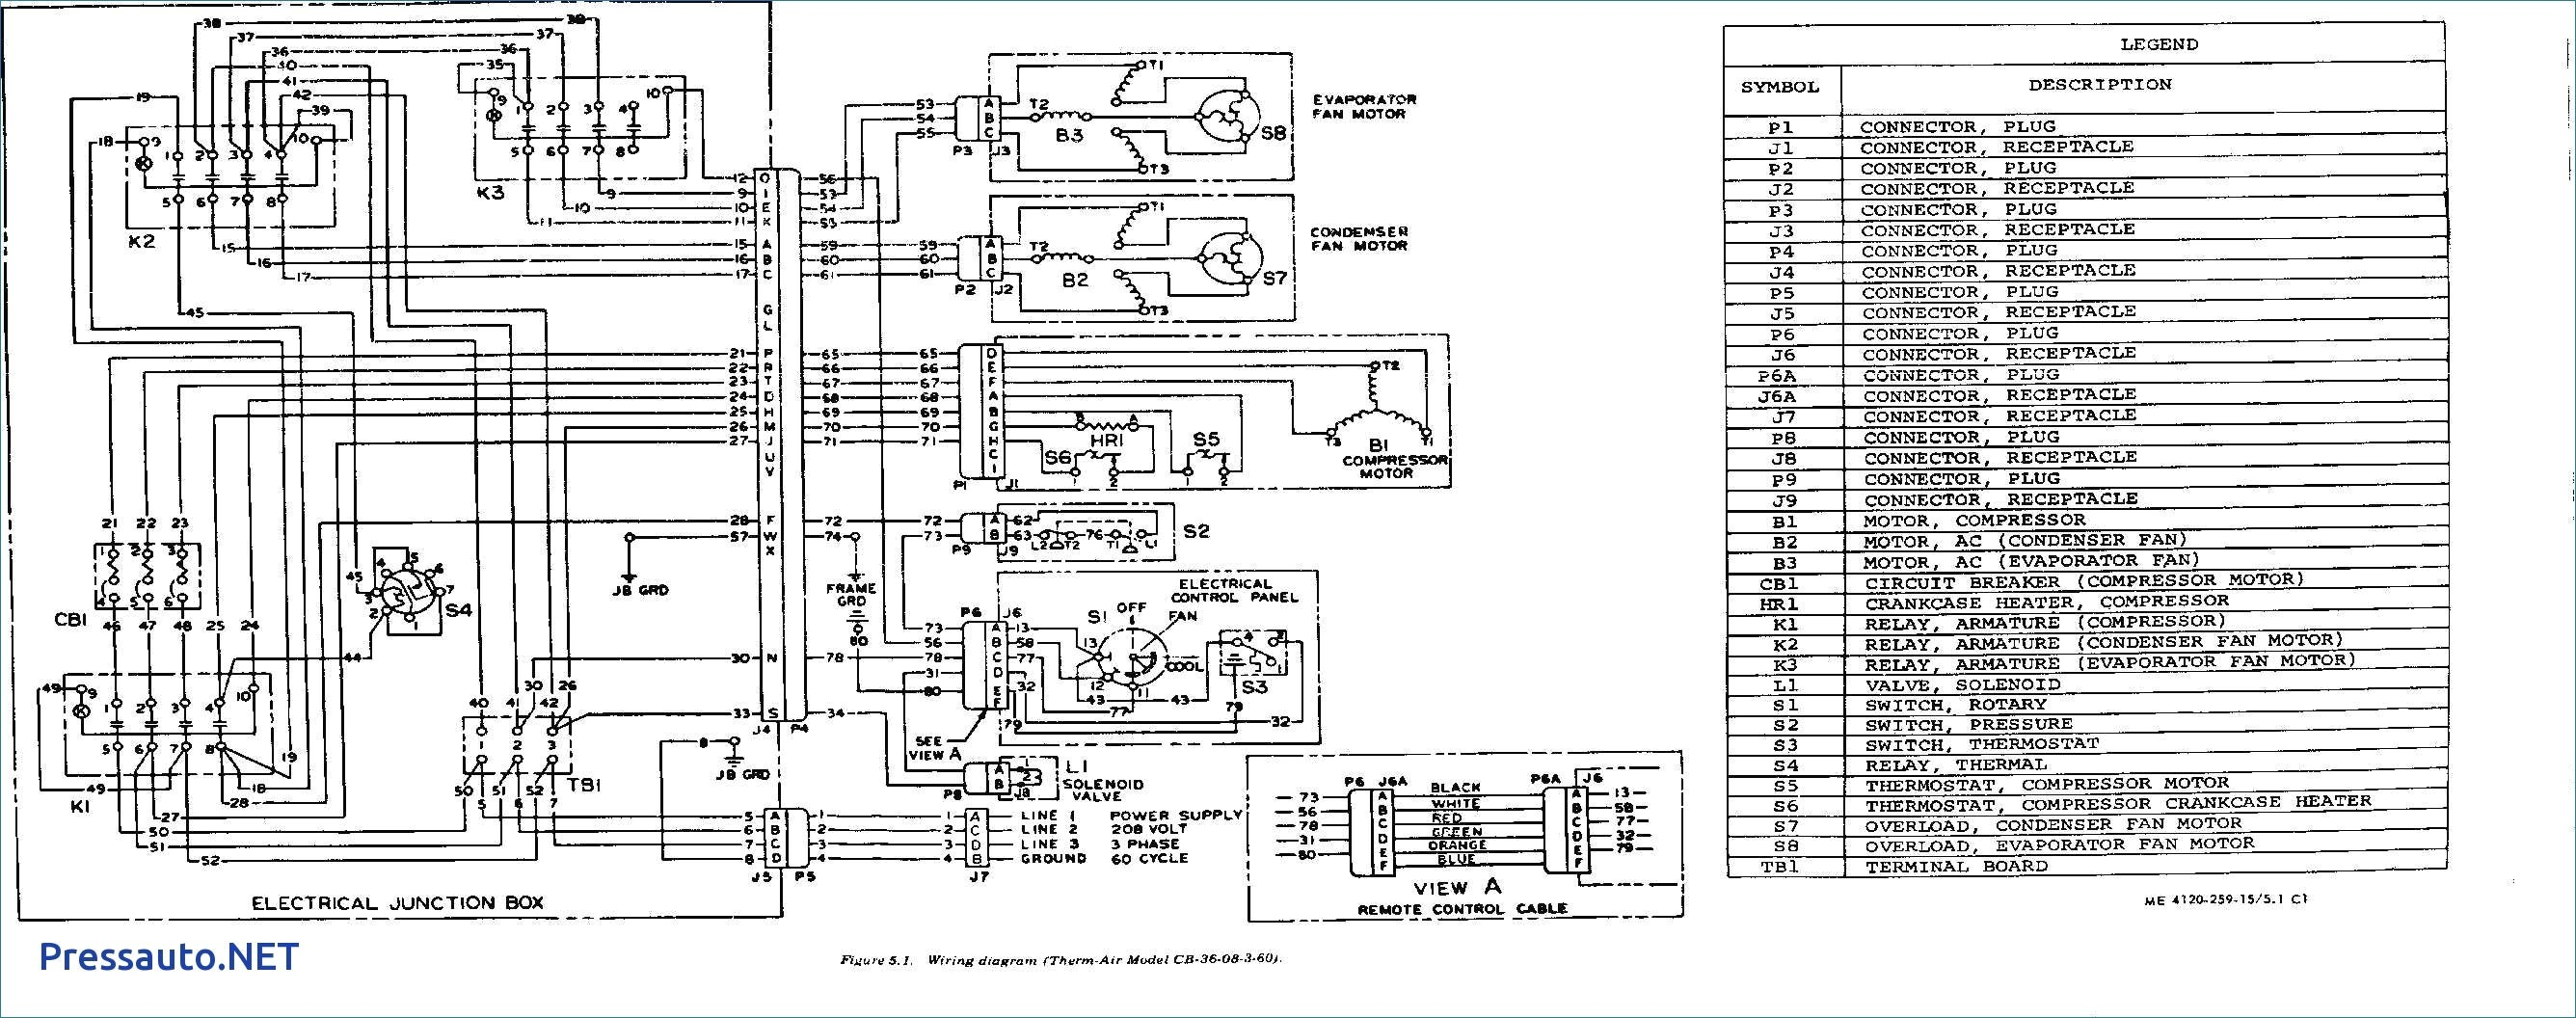 trane rooftop unit wiring diagram Download-Trane Hvac Wiring Diagrams Schematics Lovely Diagram 7-s